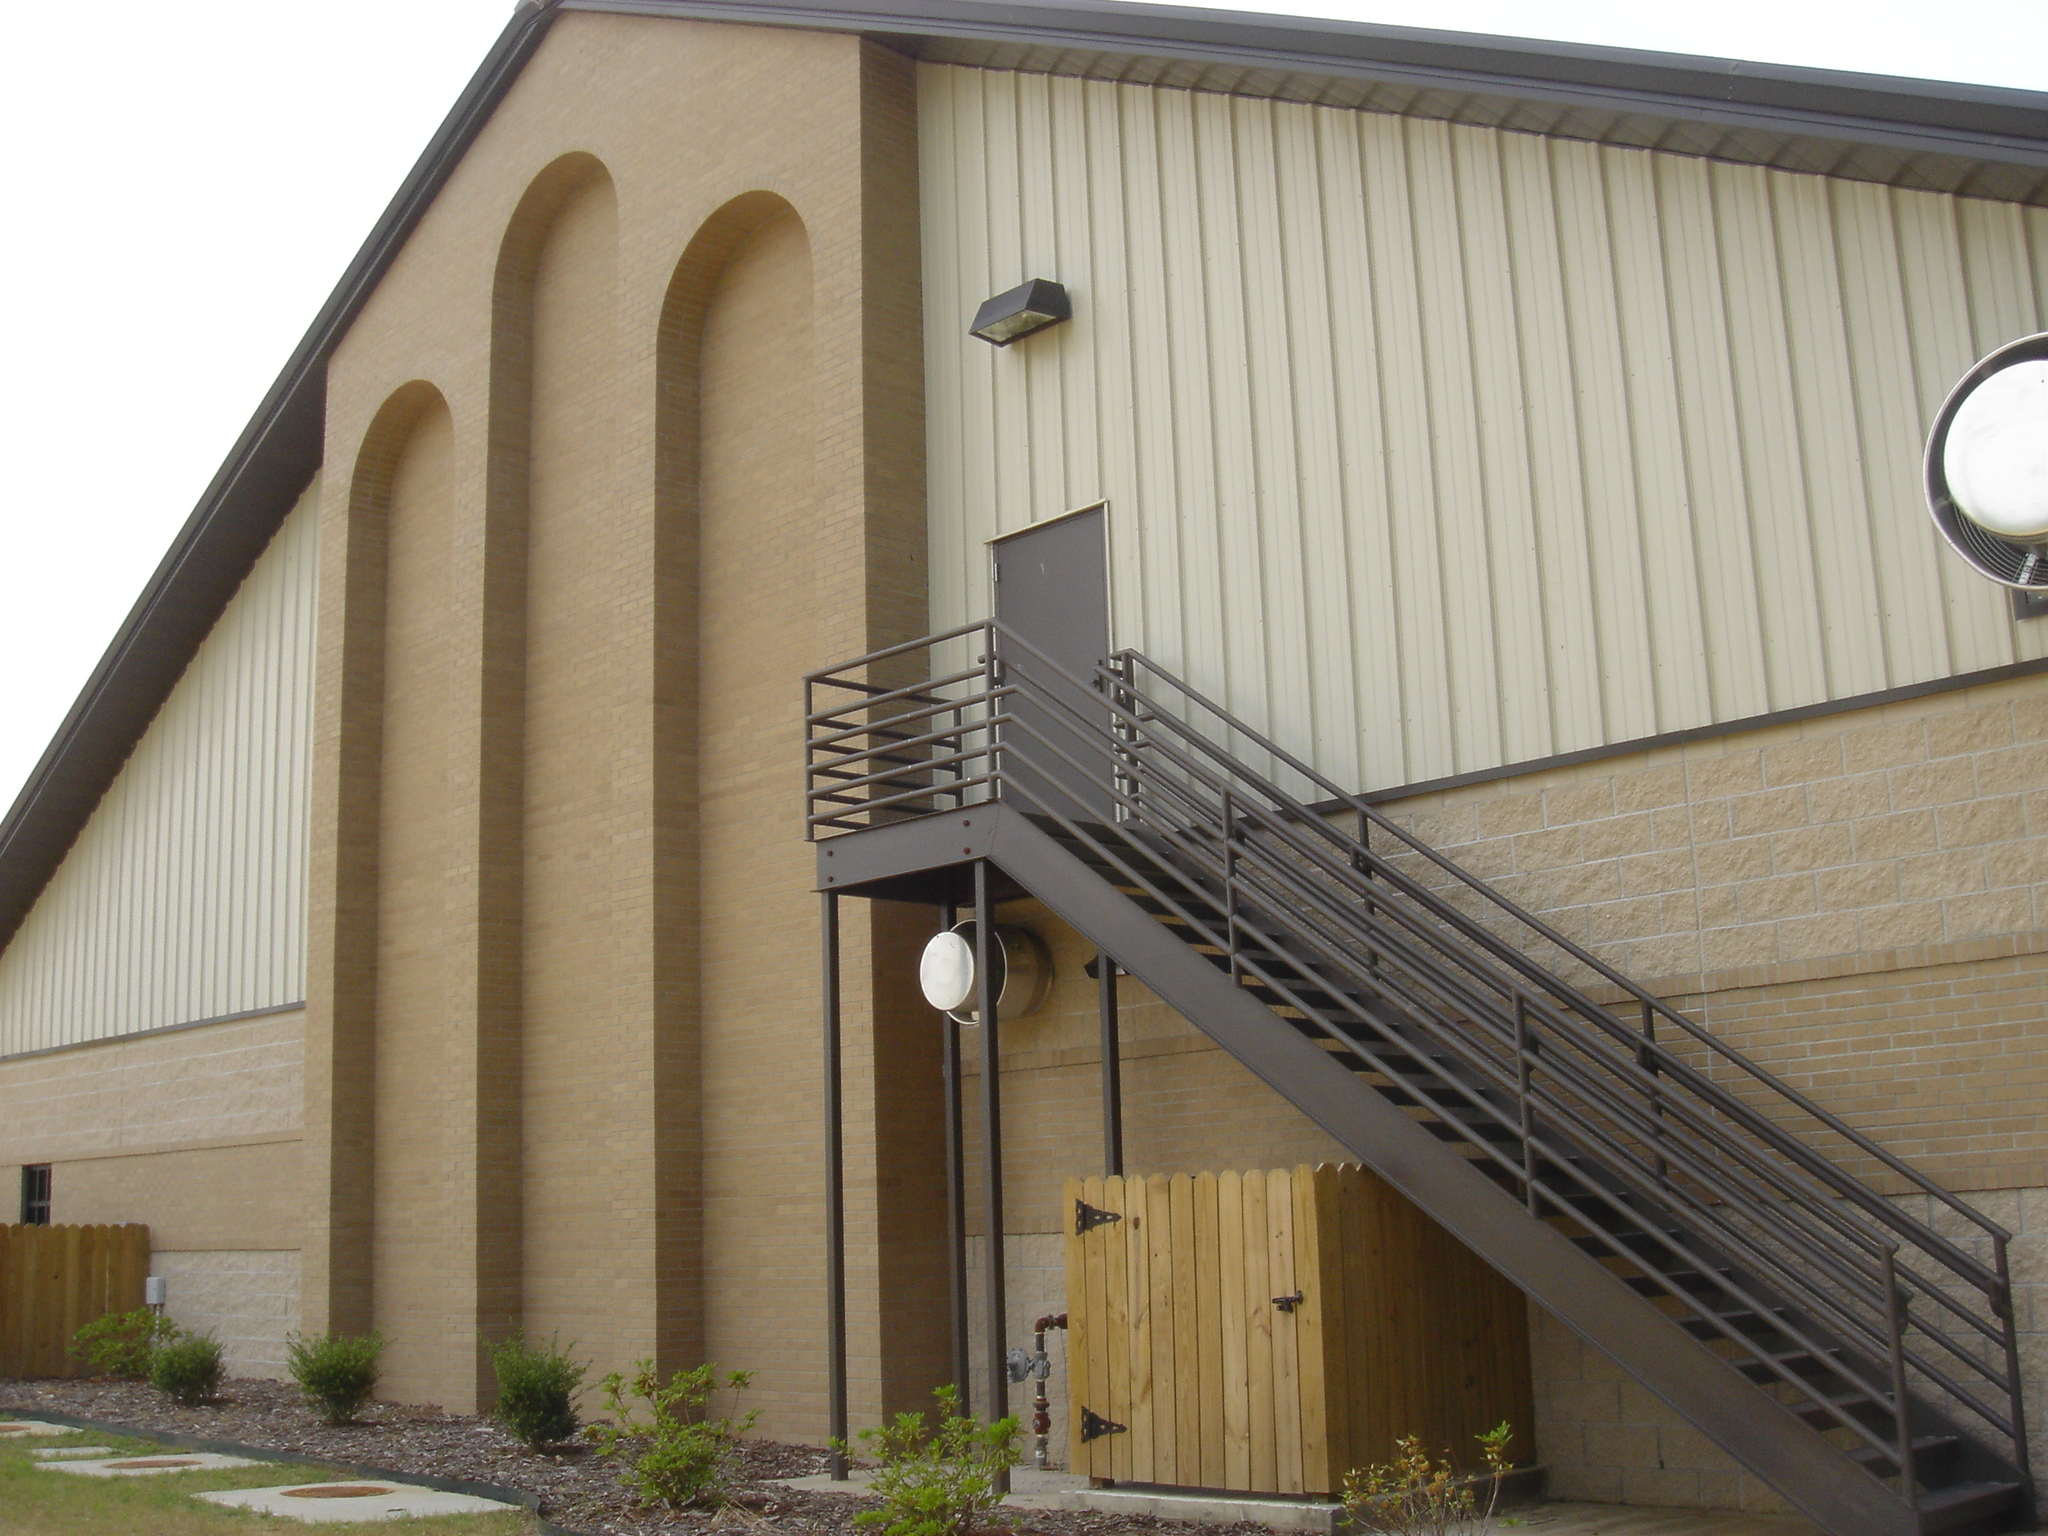 Oak Park Family Life Center | Little Rock, AR